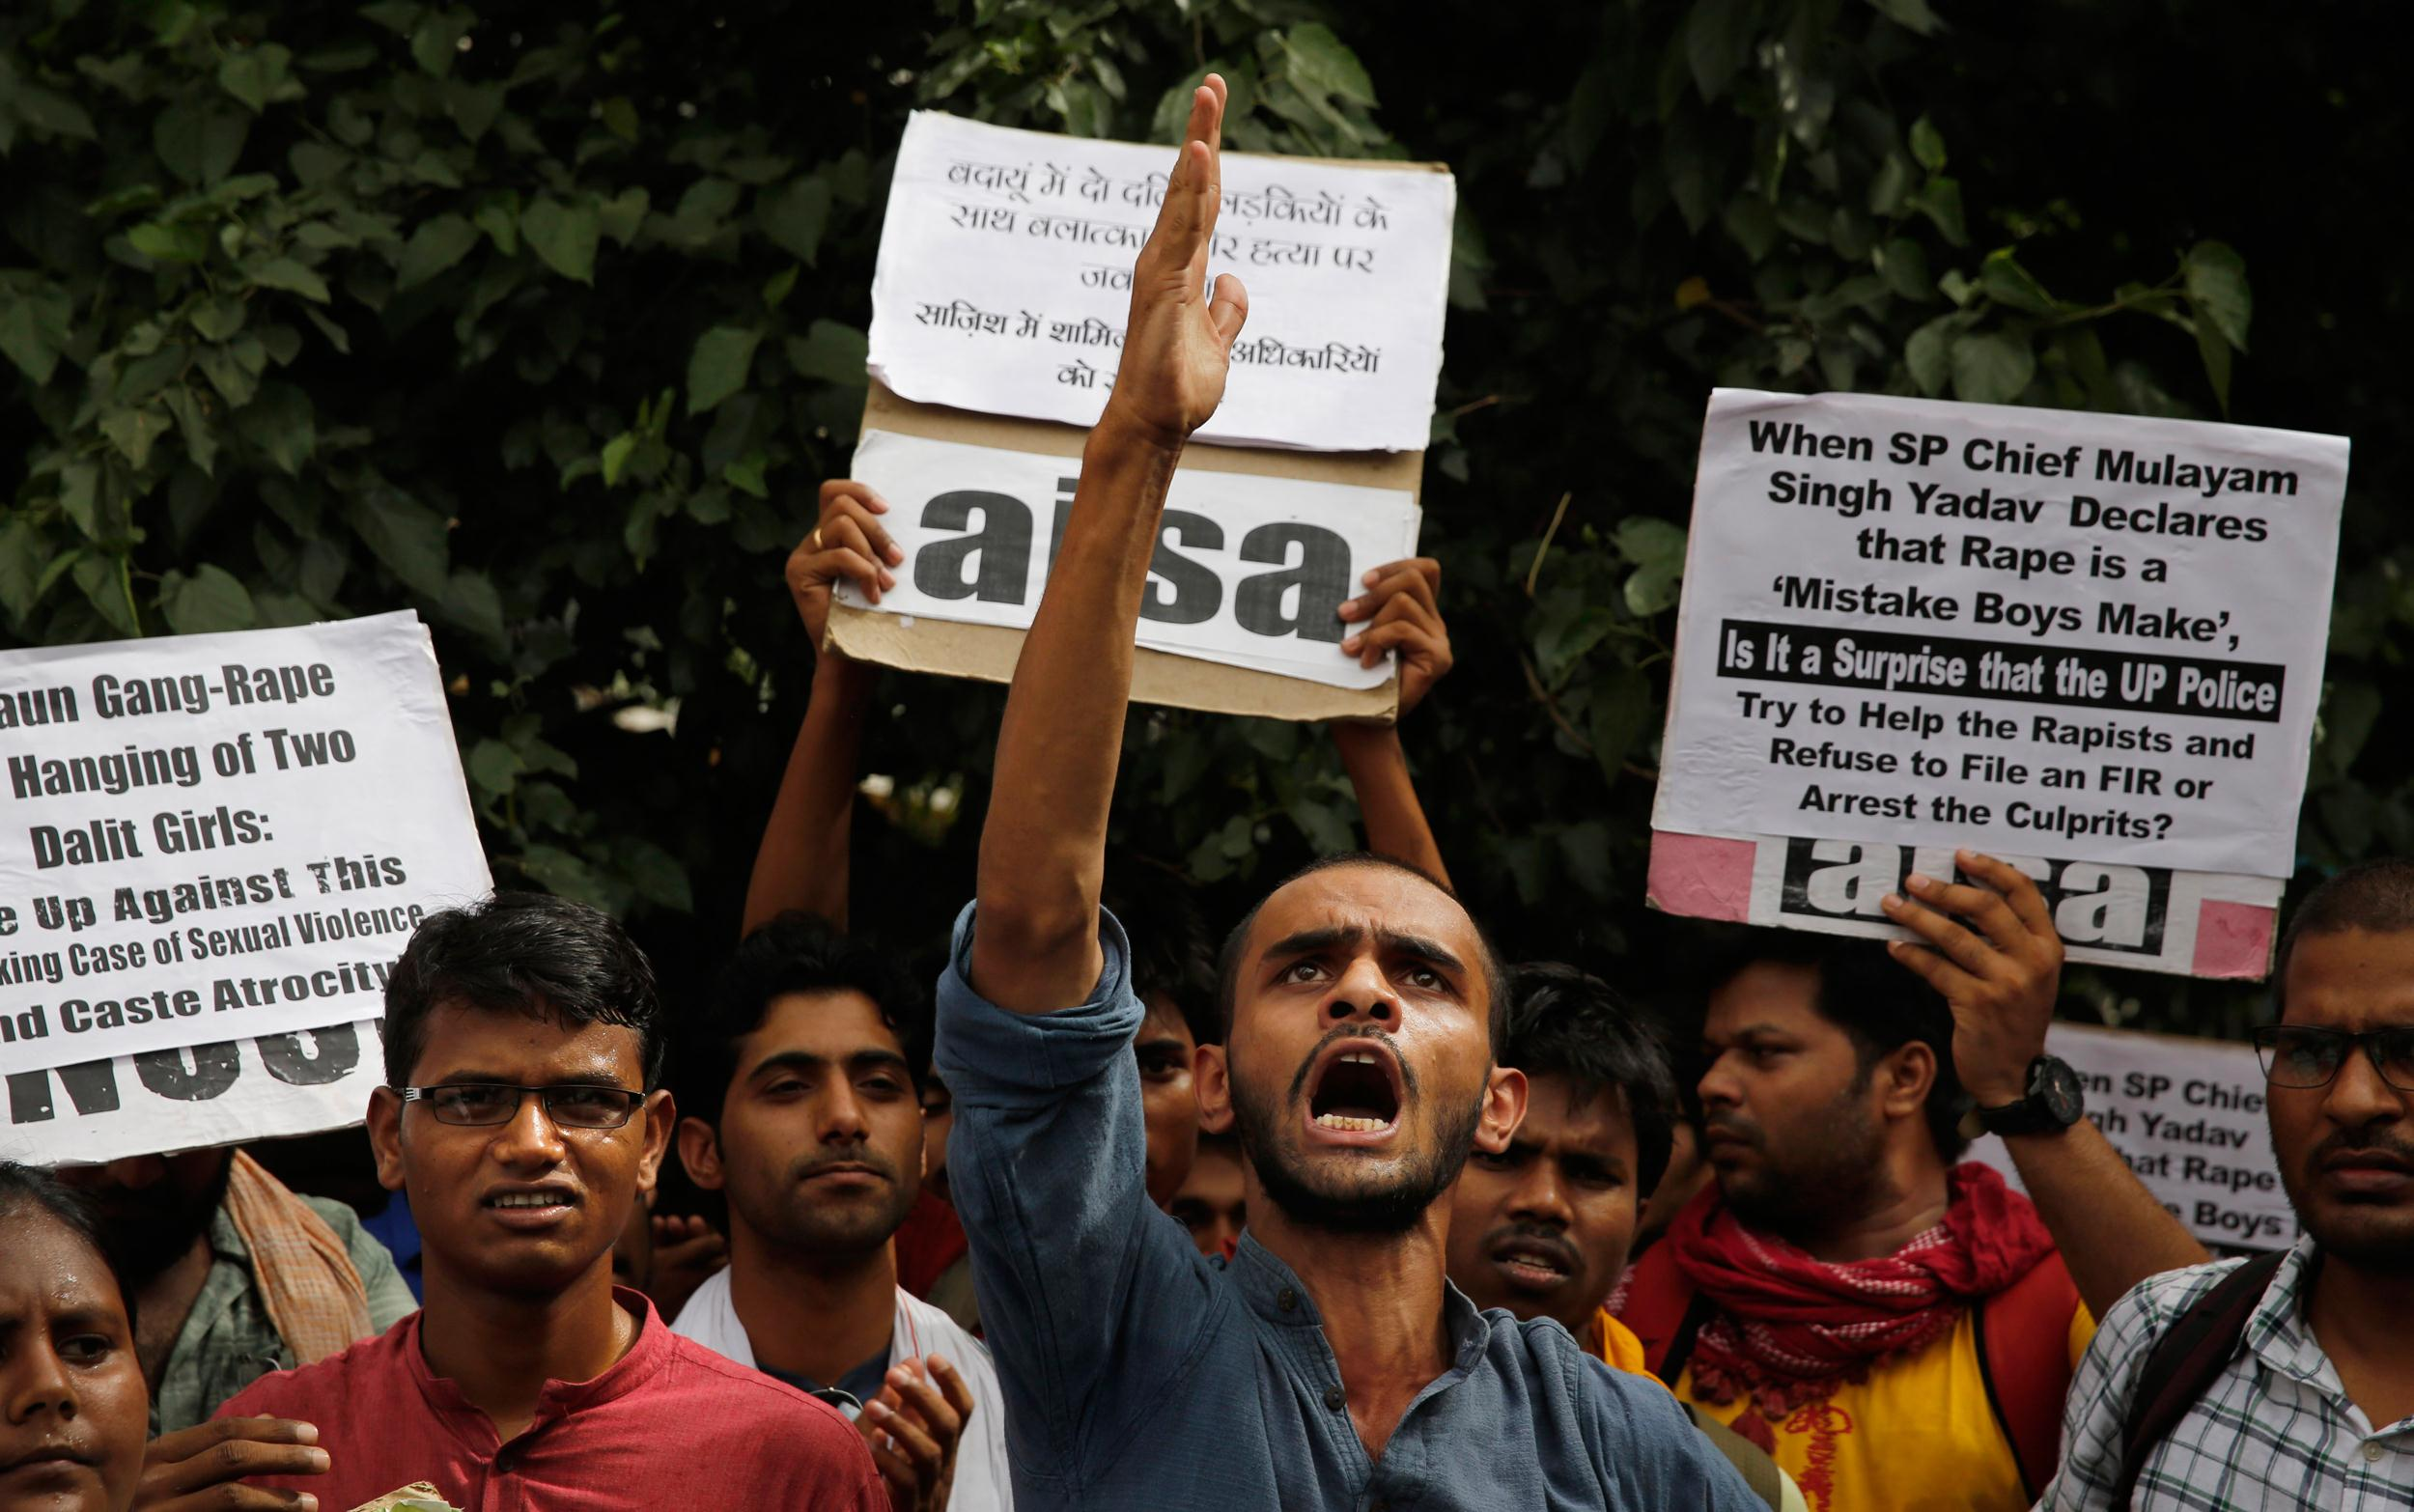 Image: A protest against a gang rape of two teenage girls in India